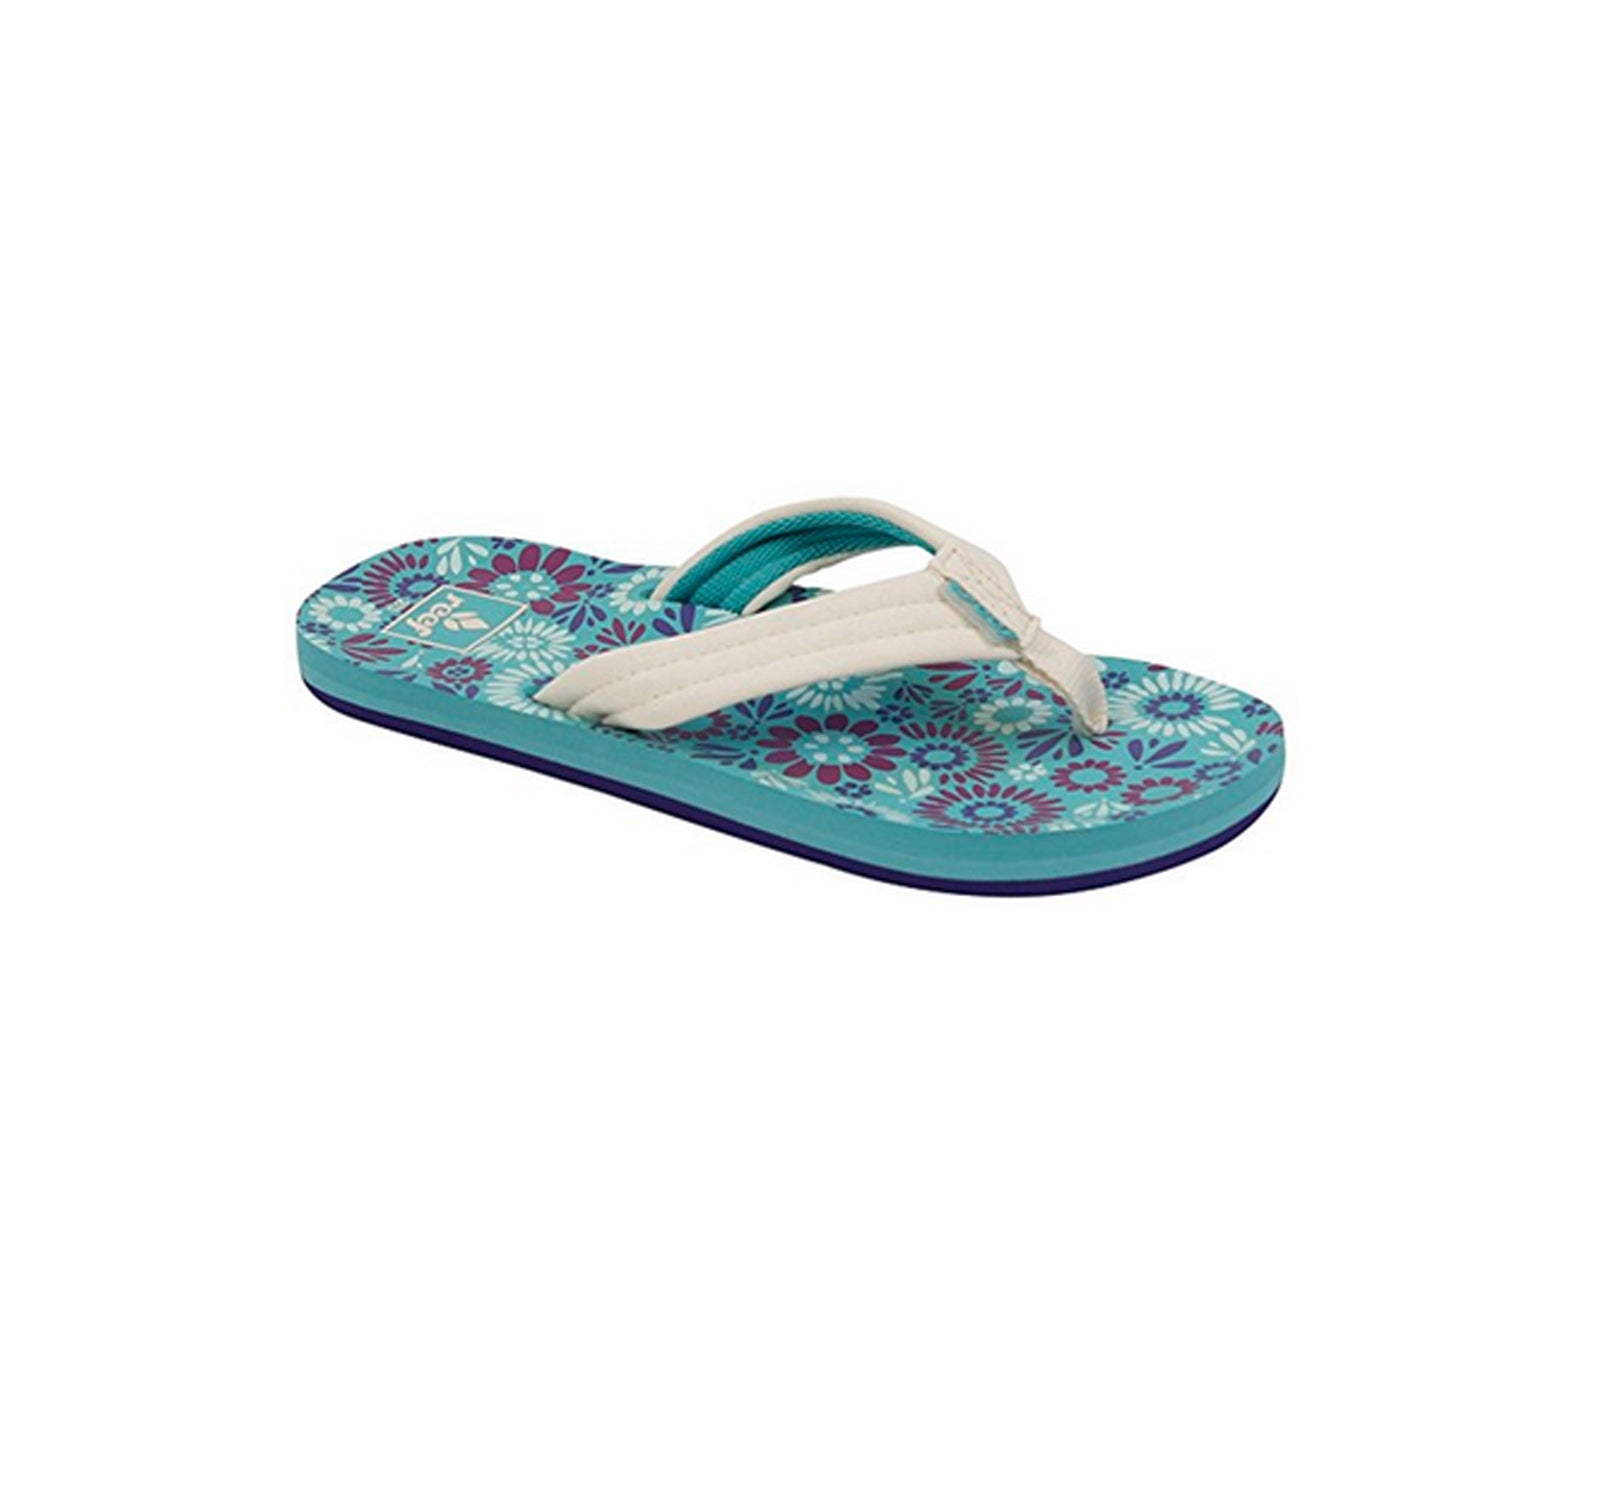 Reef Little Ahi Youth Girl's Sandals